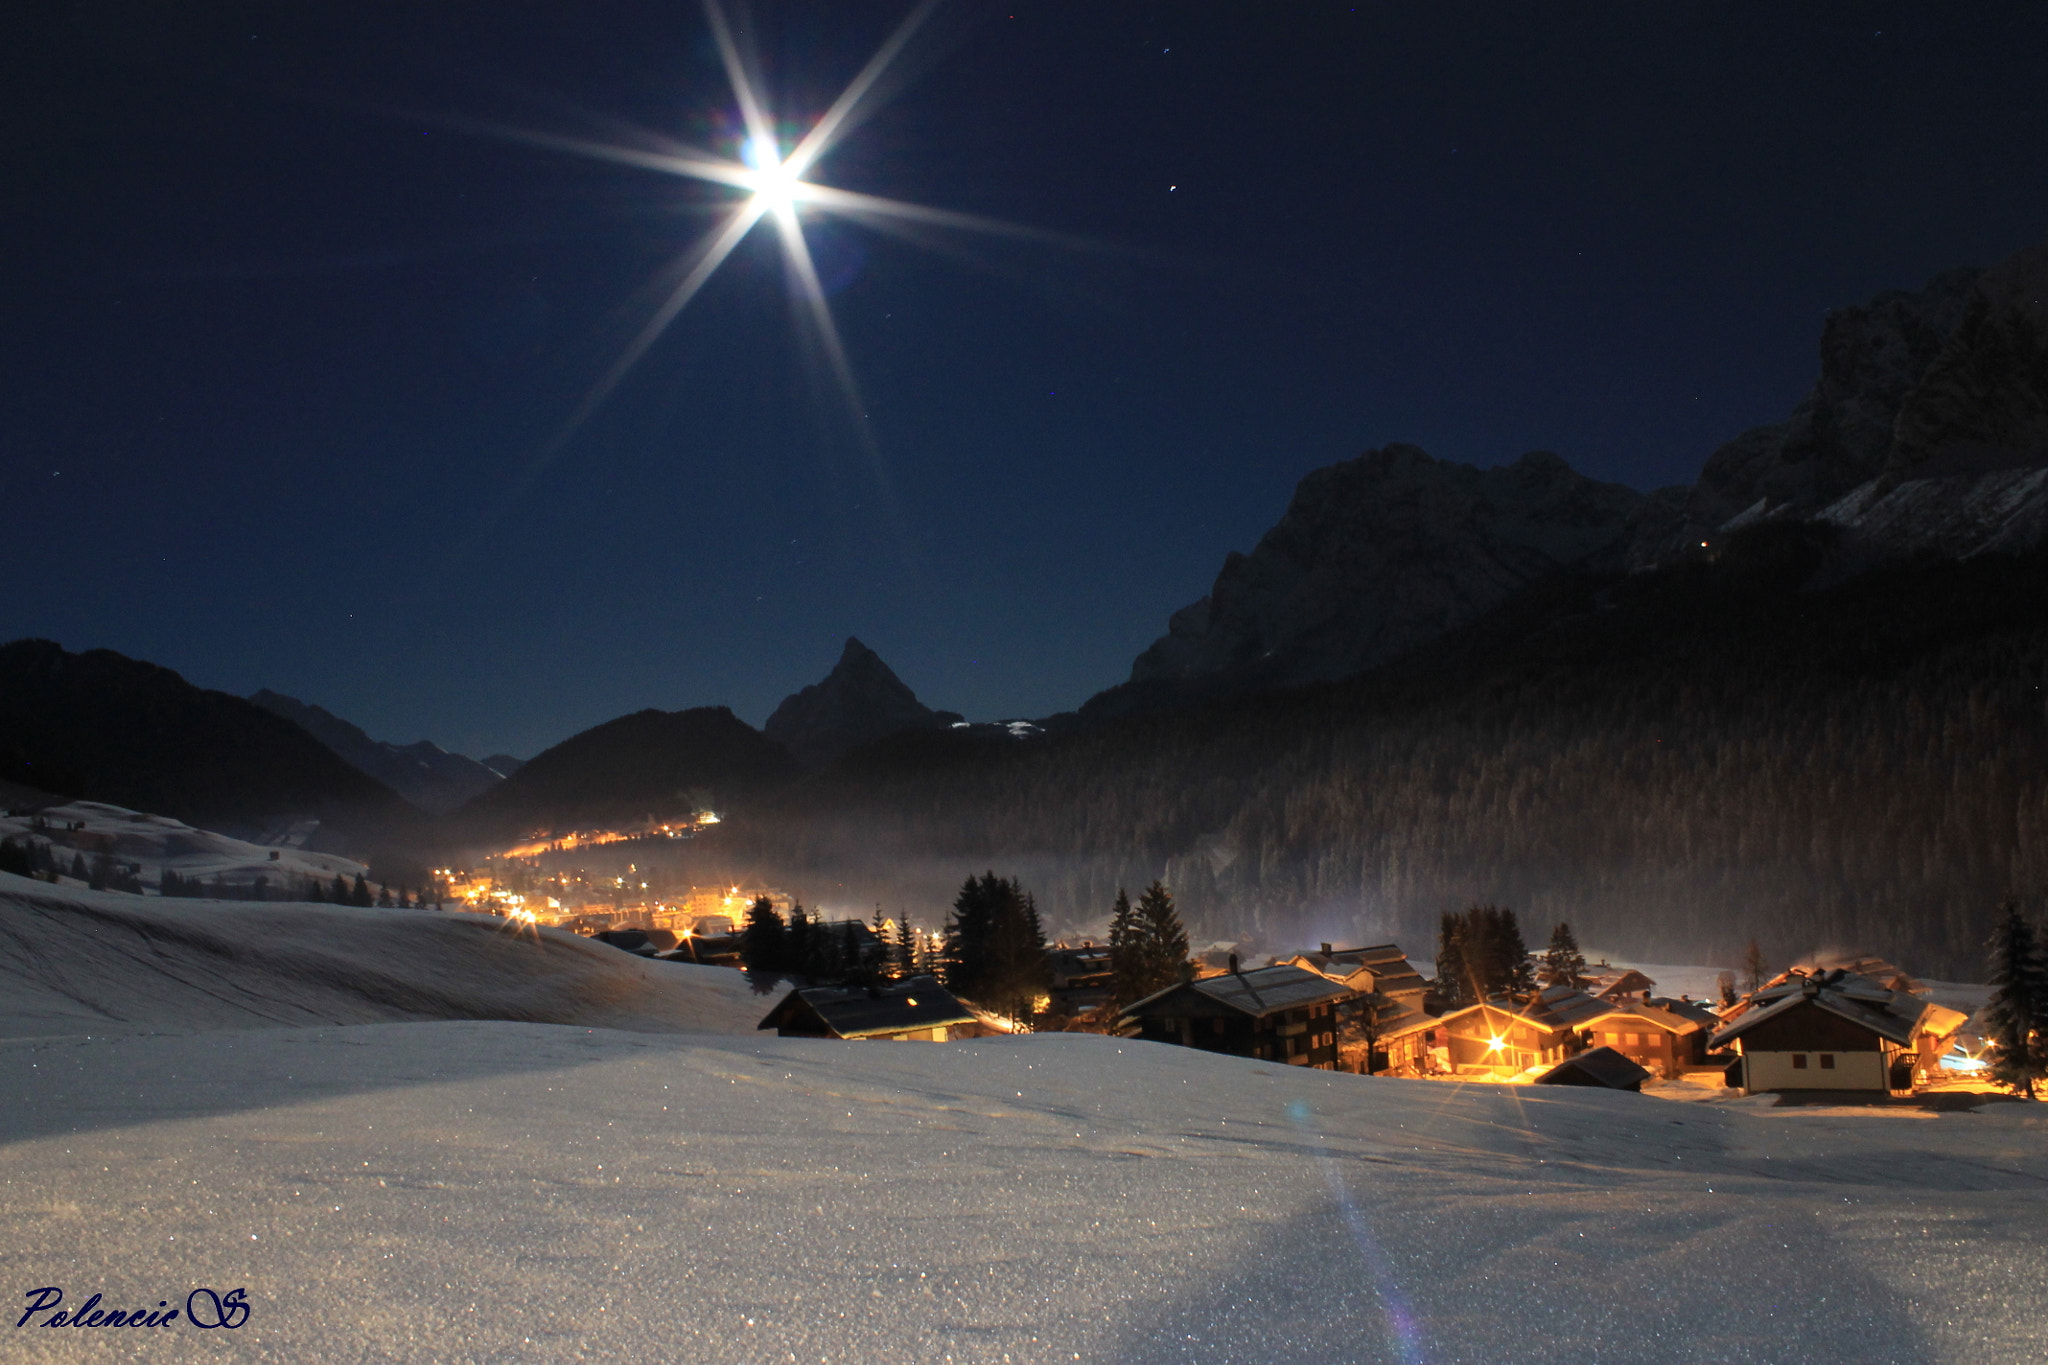 Photograph The peace of the village in the moonlight by Silvia Polencic on 500px